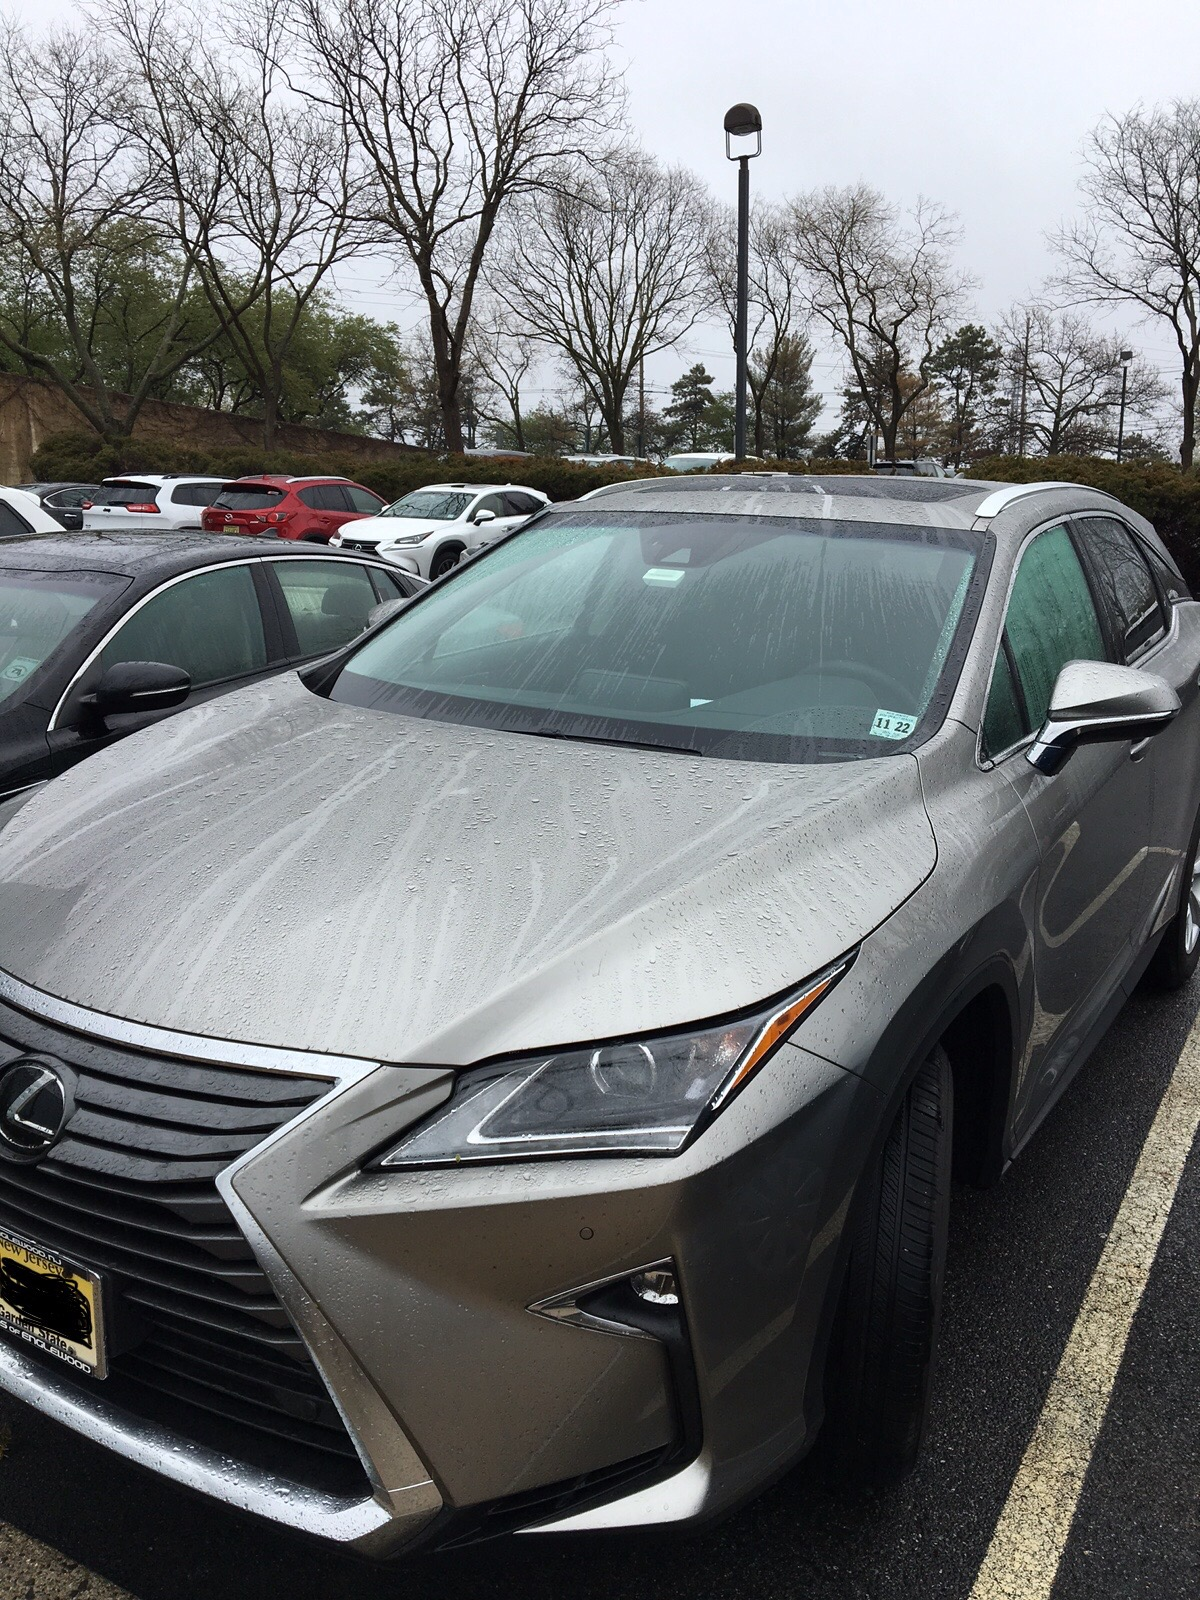 nj lease takeover 2017 lexus rx 350 awd 511 month 30 months remaining marketplace. Black Bedroom Furniture Sets. Home Design Ideas